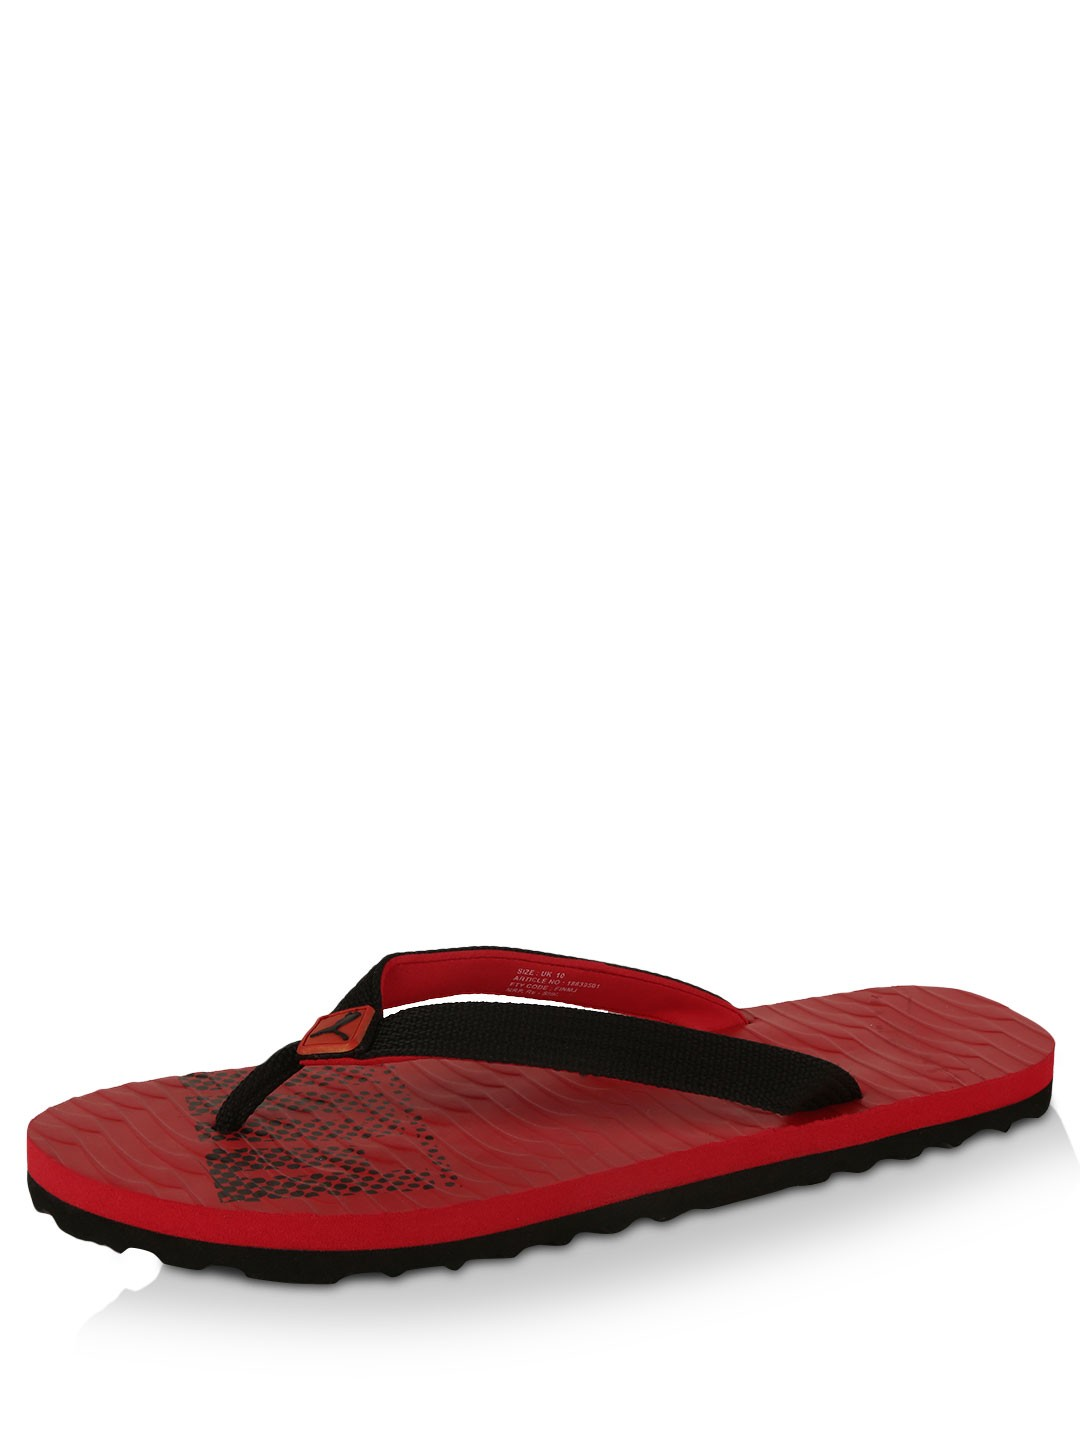 buy puma textured flip flops for men men 39 s red flip. Black Bedroom Furniture Sets. Home Design Ideas